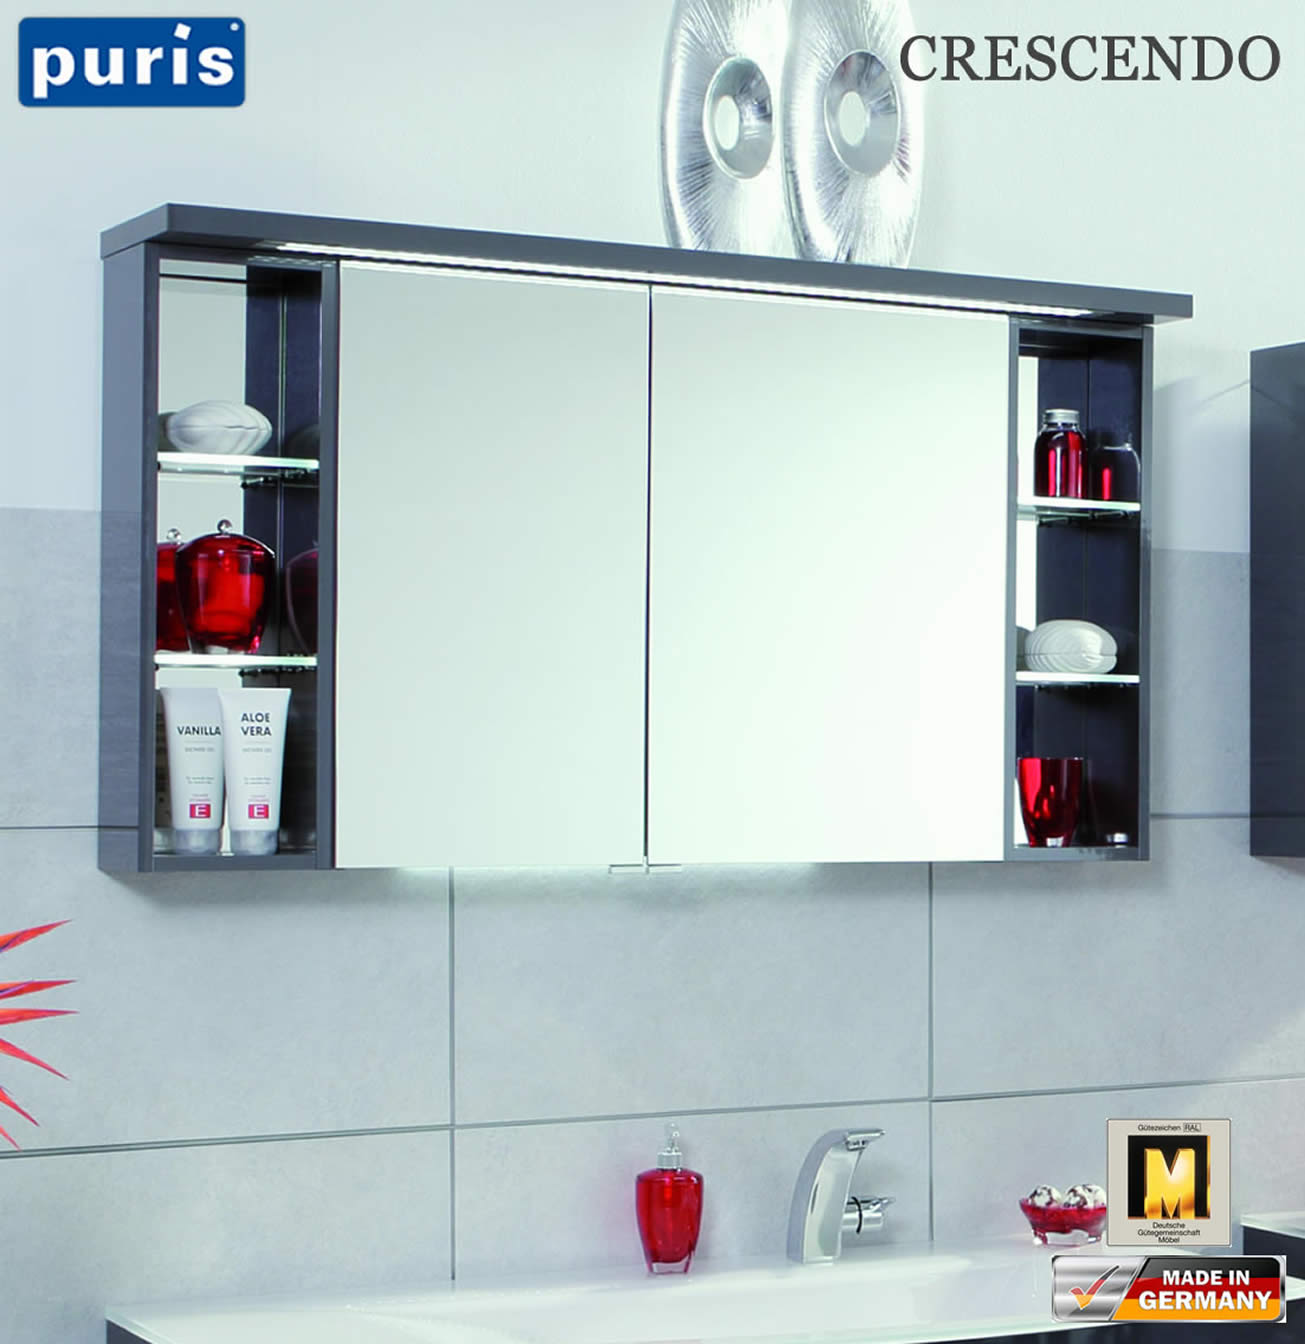 puris crescendo led spiegelschrank 120 cm s2a431226l. Black Bedroom Furniture Sets. Home Design Ideas